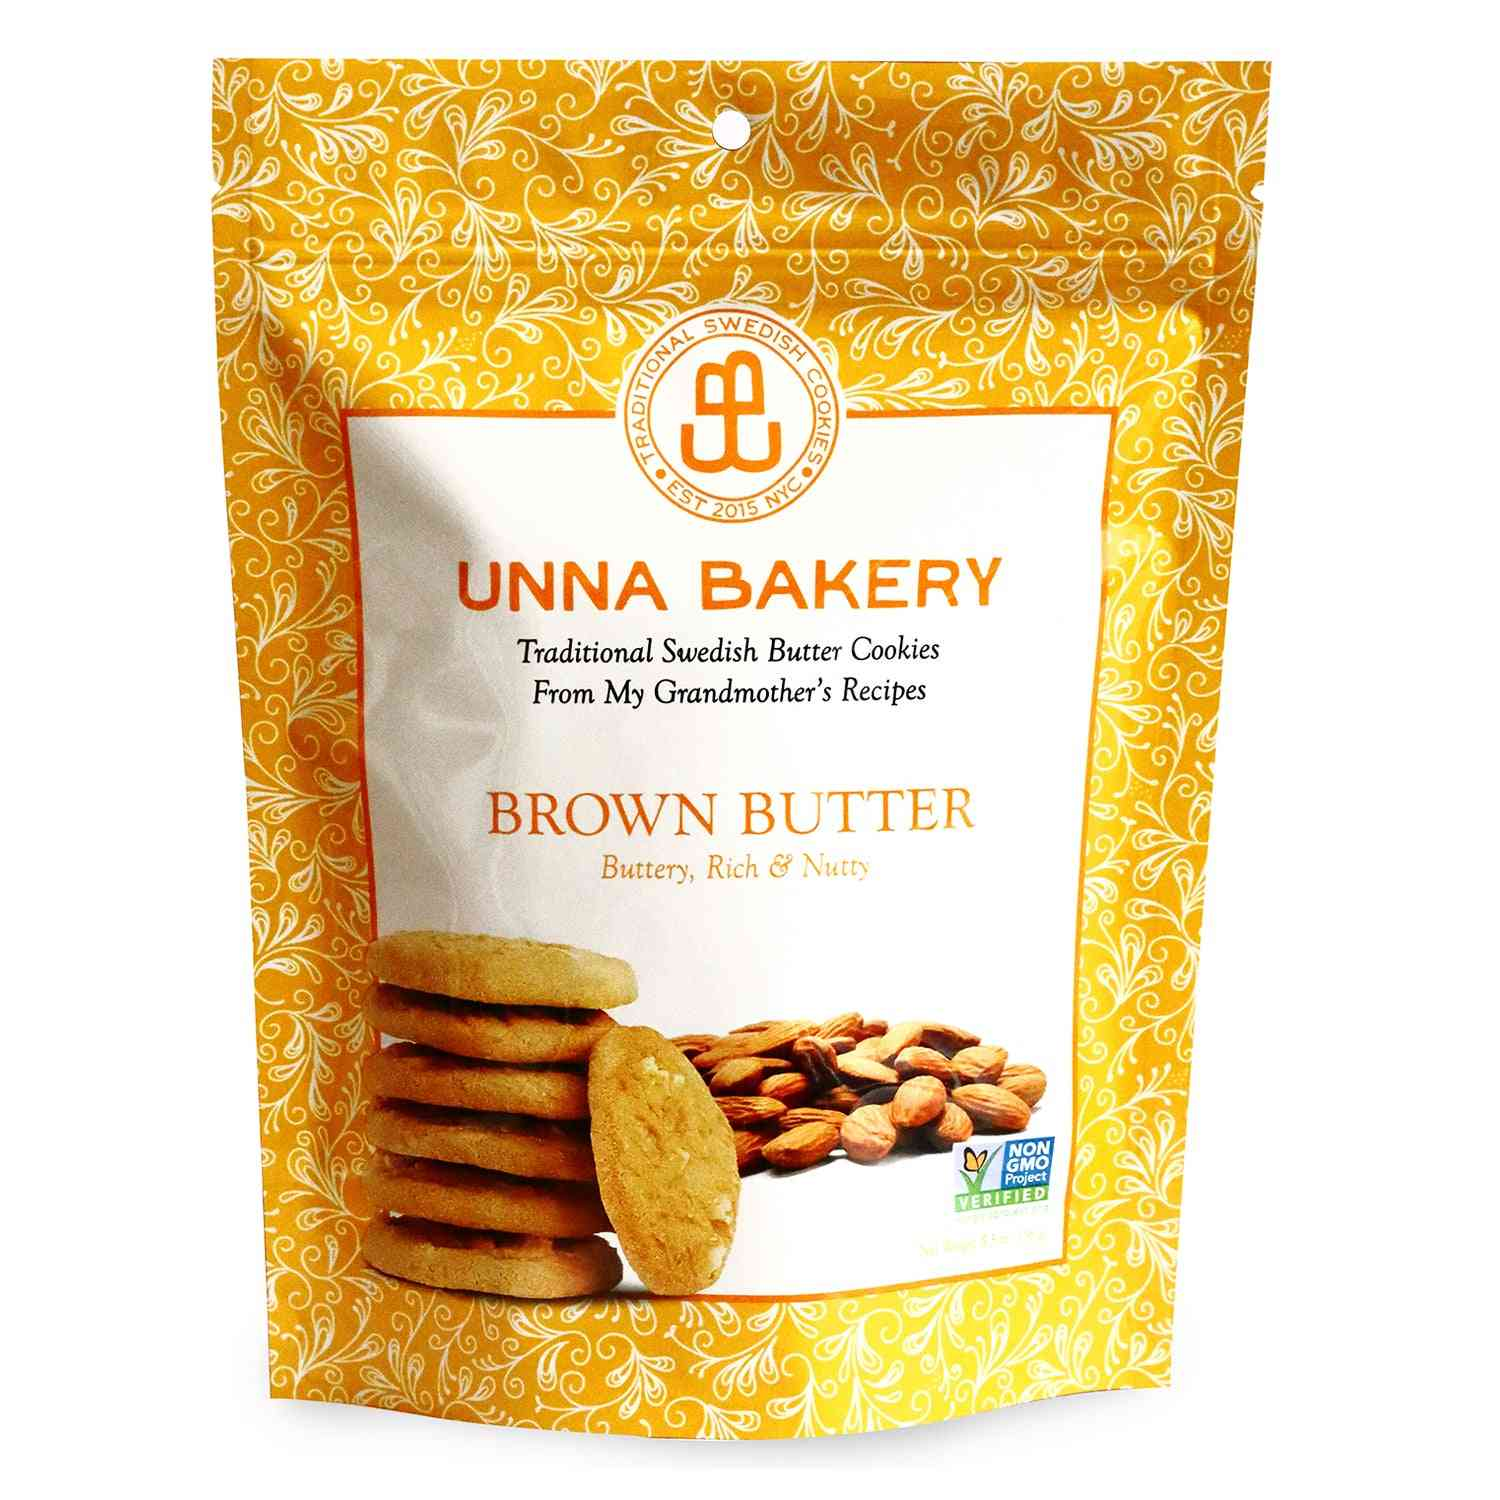 Brown Butter Cookies 5.5 Oz From Unna Bakery. 1 Case/6 Units.